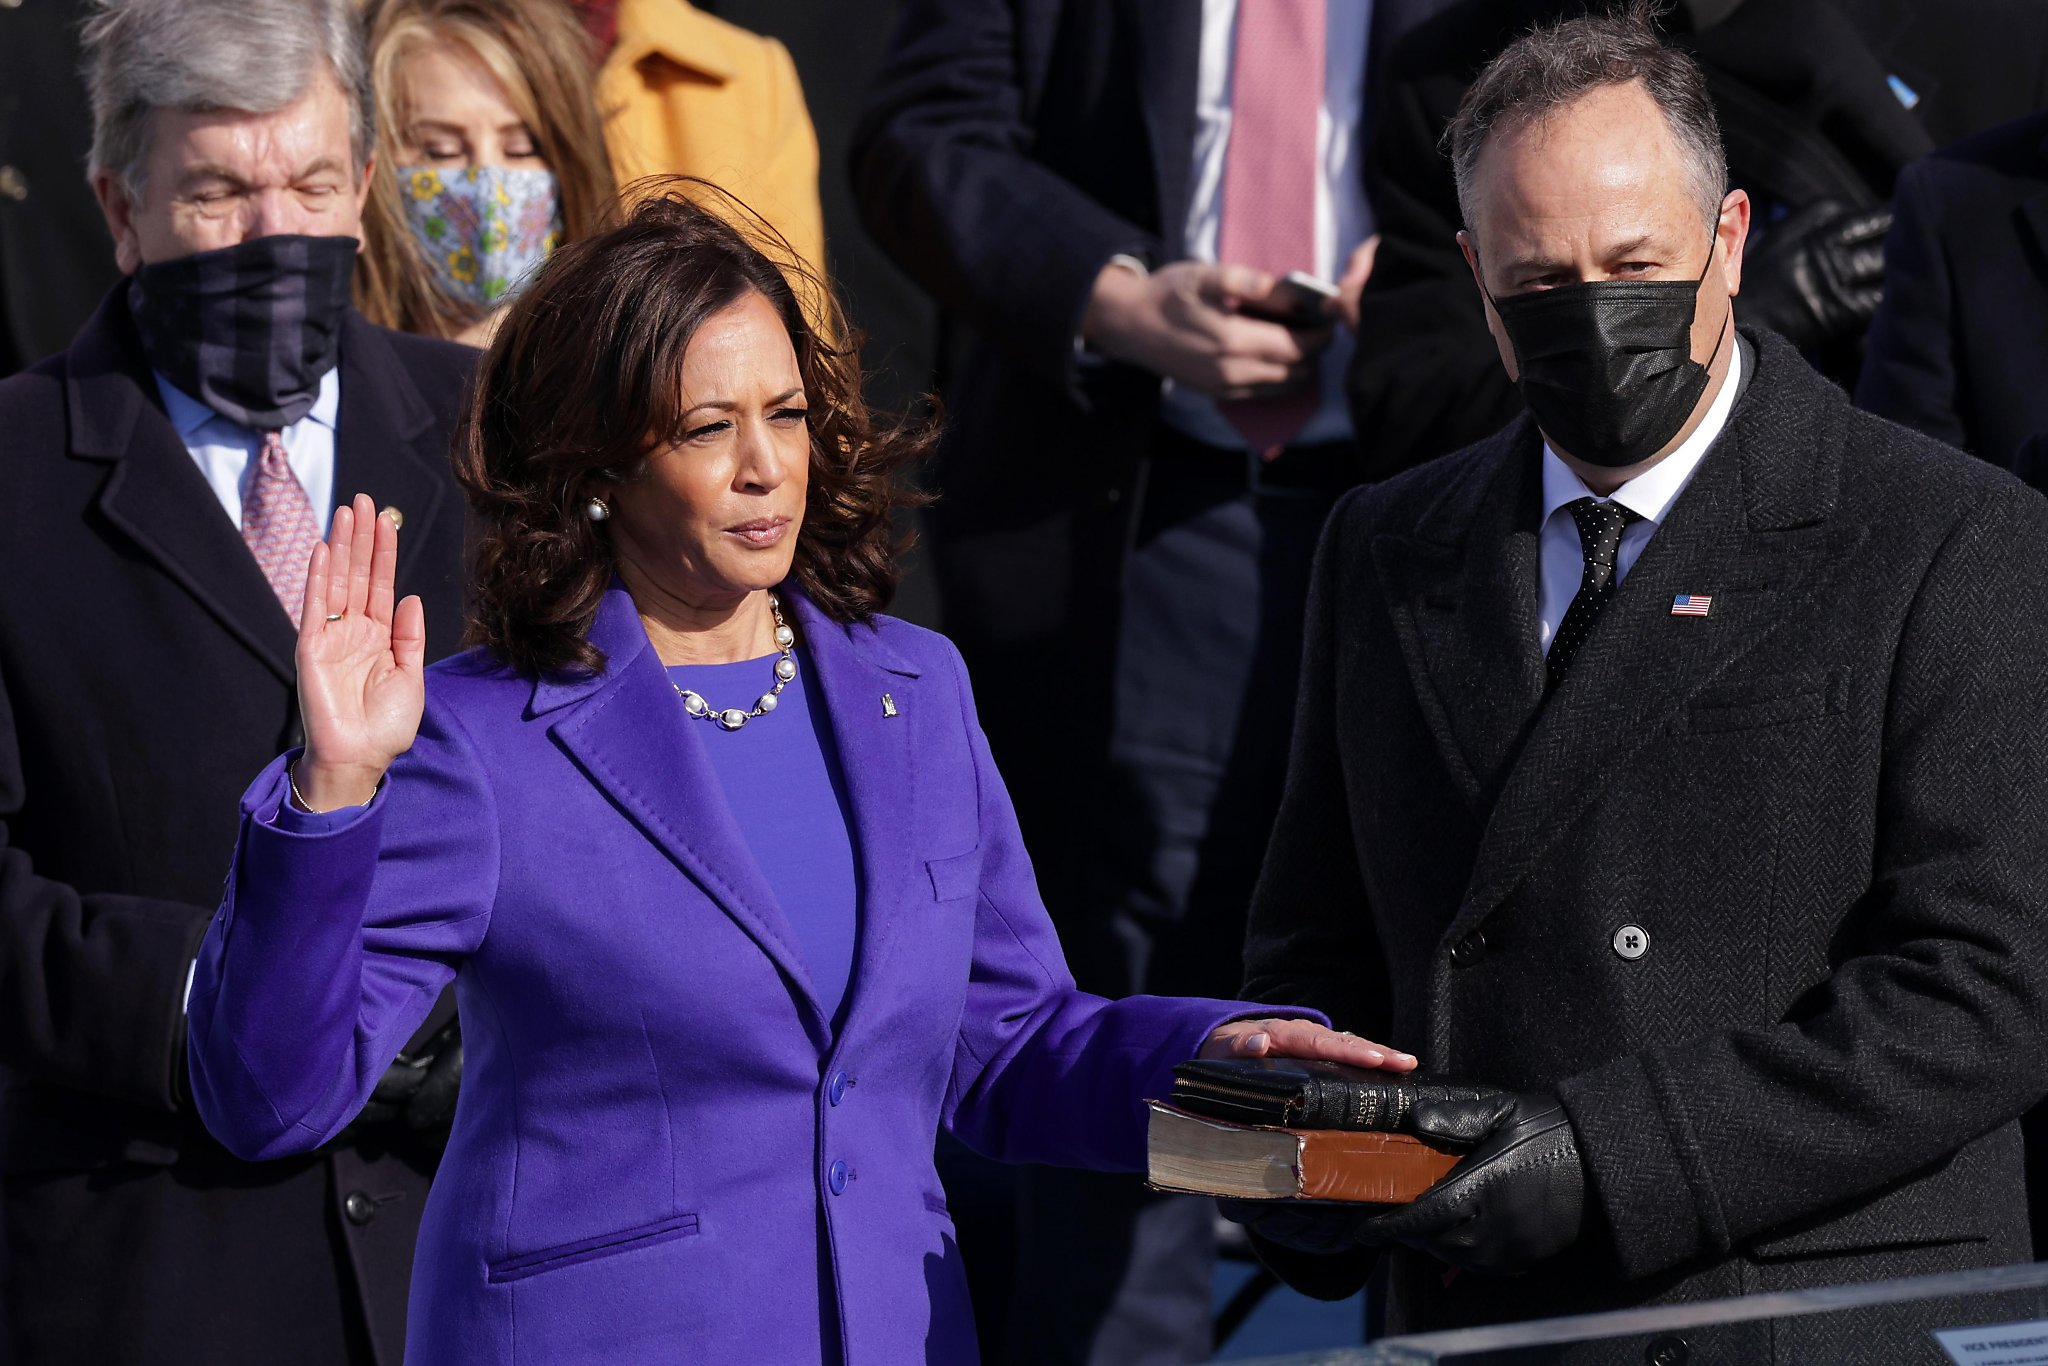 This image of Kamala Harris getting sworn in is one for the history books